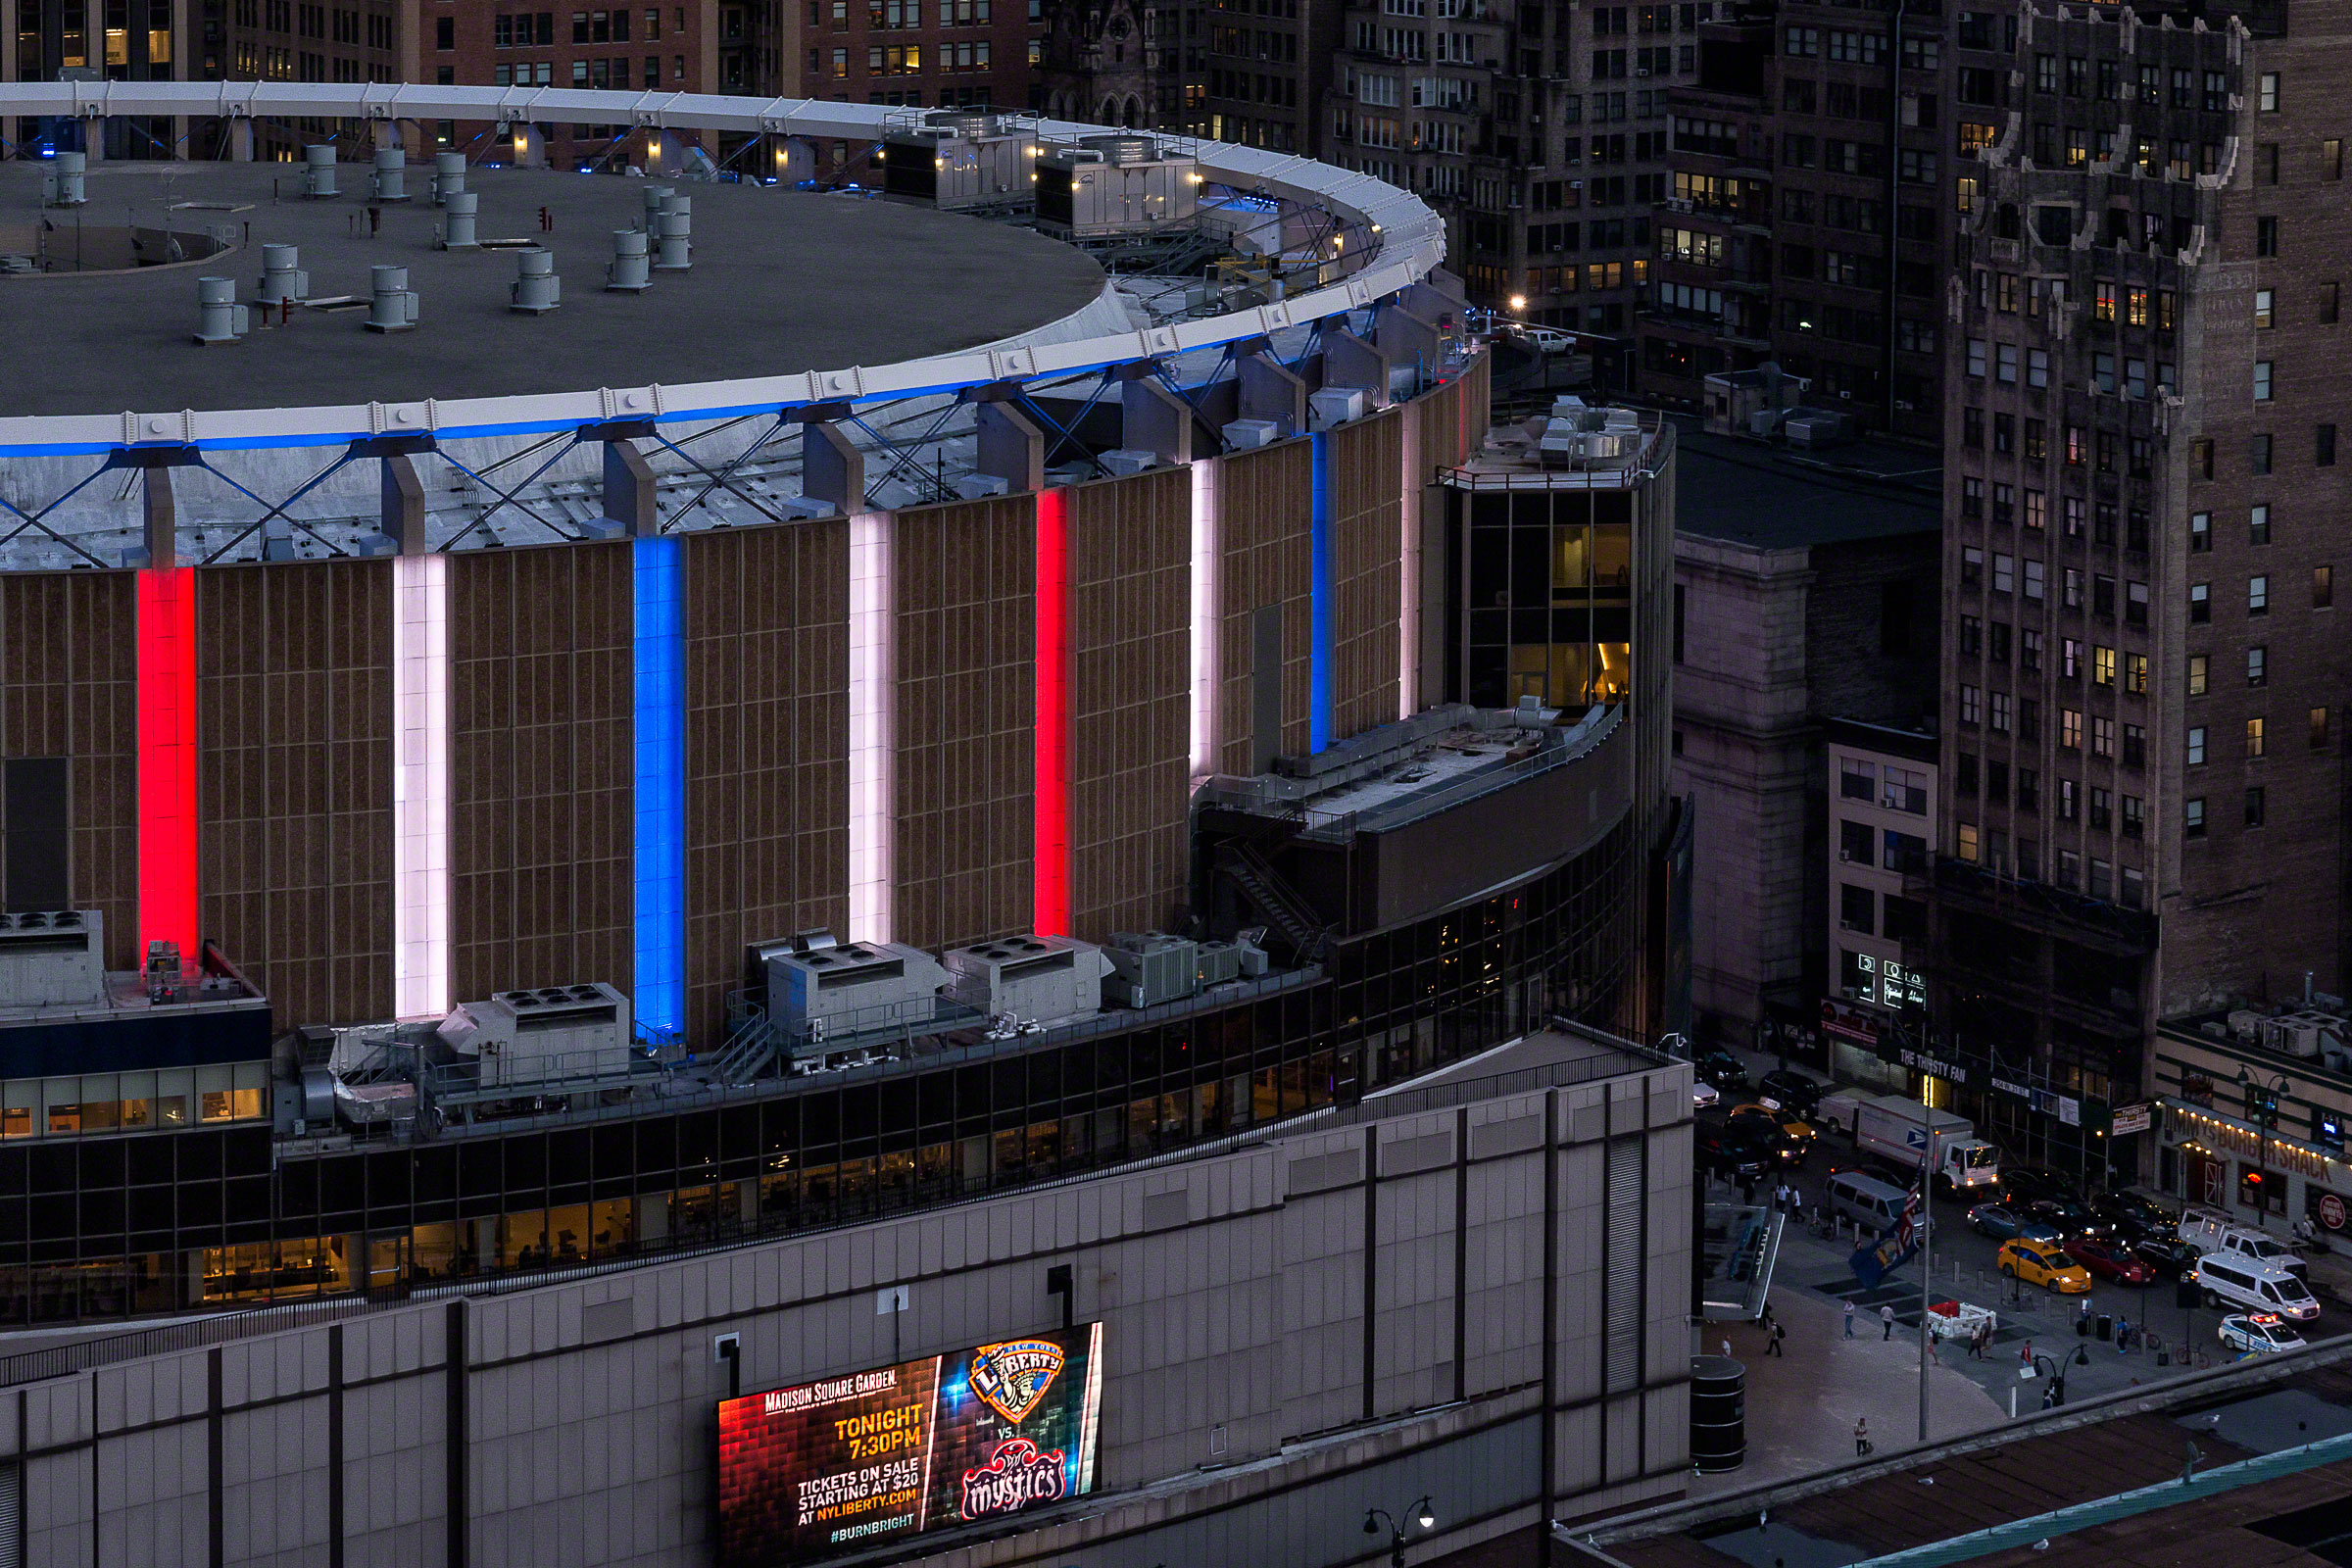 Illuminated Madison Square Garden